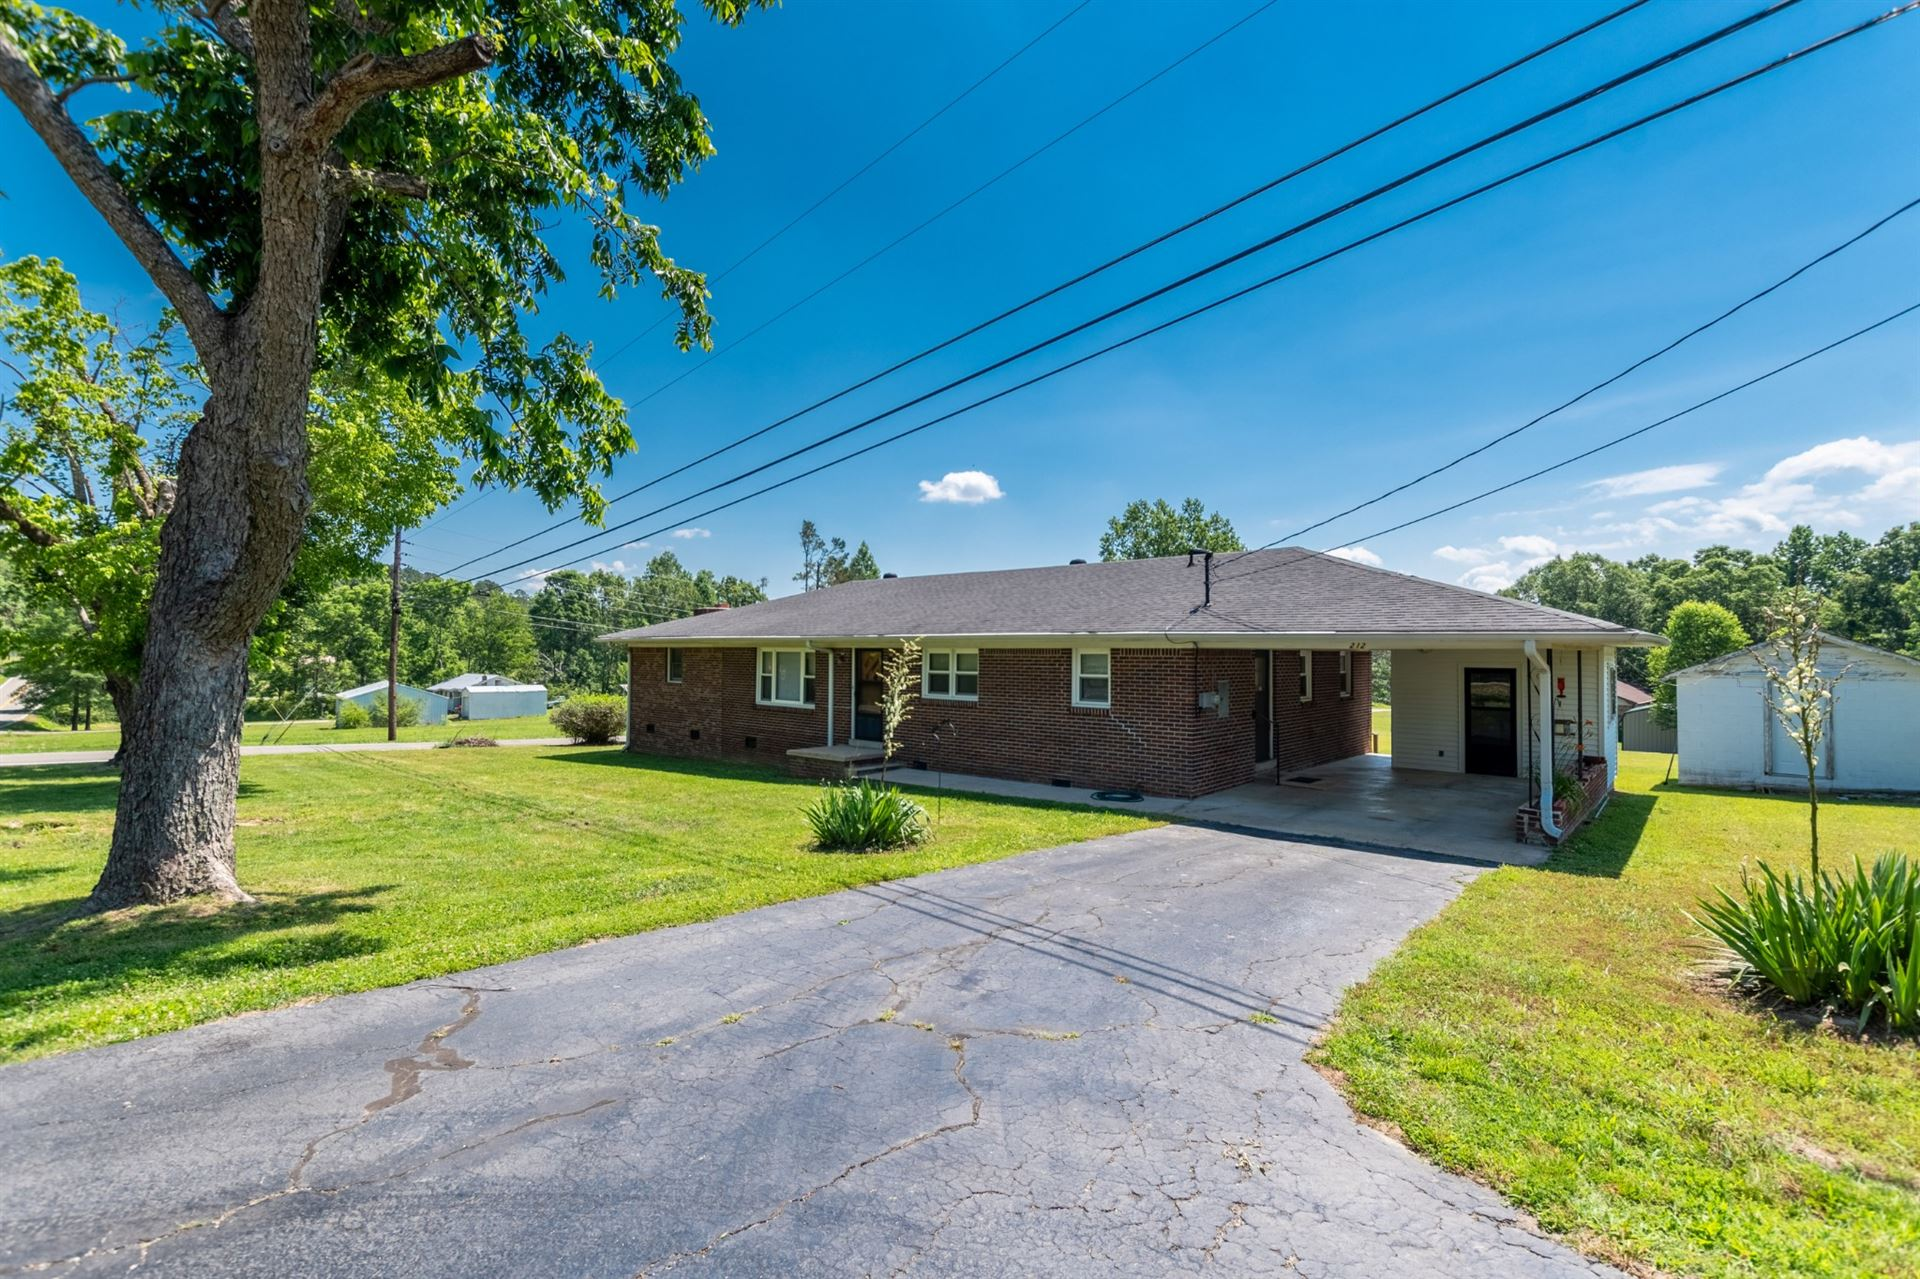 212 Davis Mill Rd, Parsons, TN 38363 - MLS#: 2158527